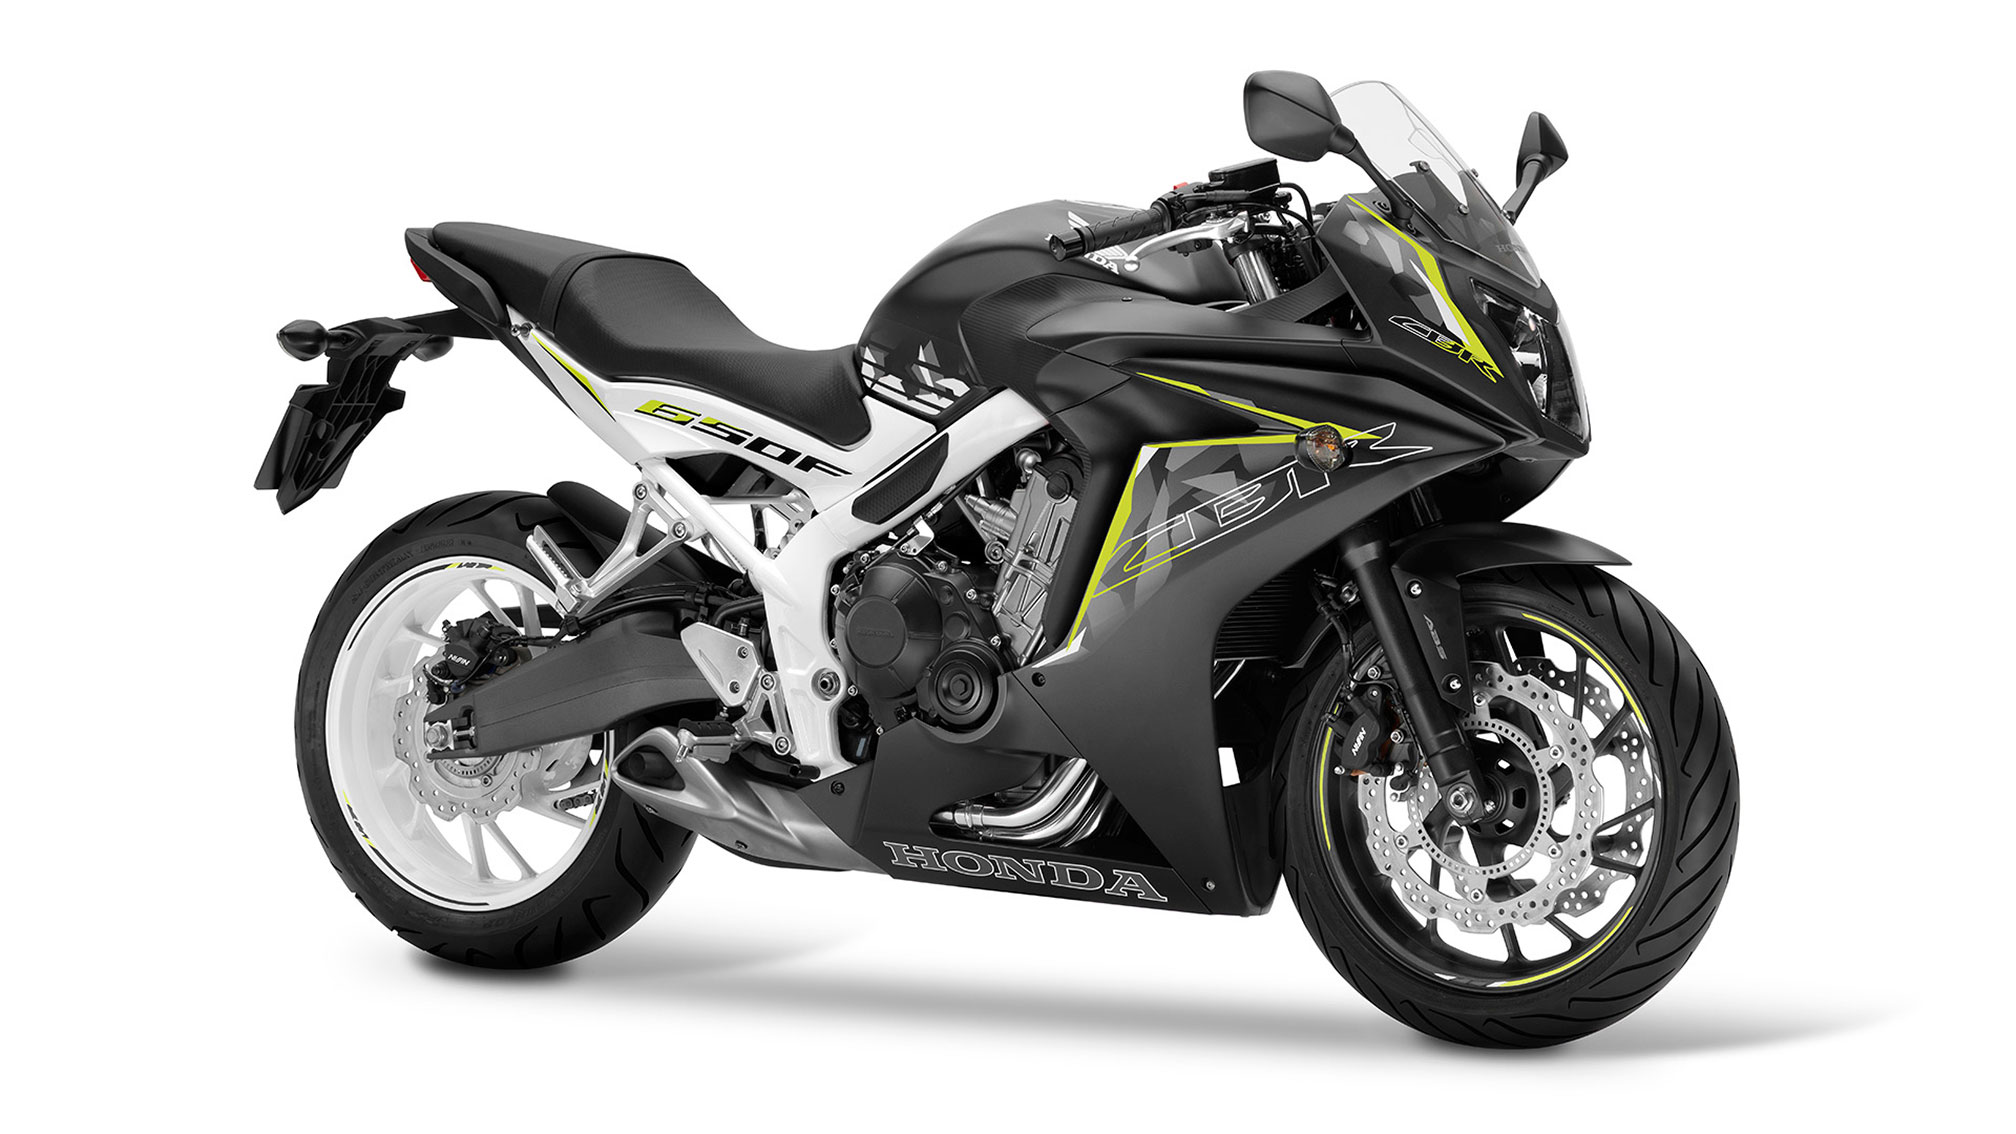 2016 honda cbr650f abs special edition review. Black Bedroom Furniture Sets. Home Design Ideas